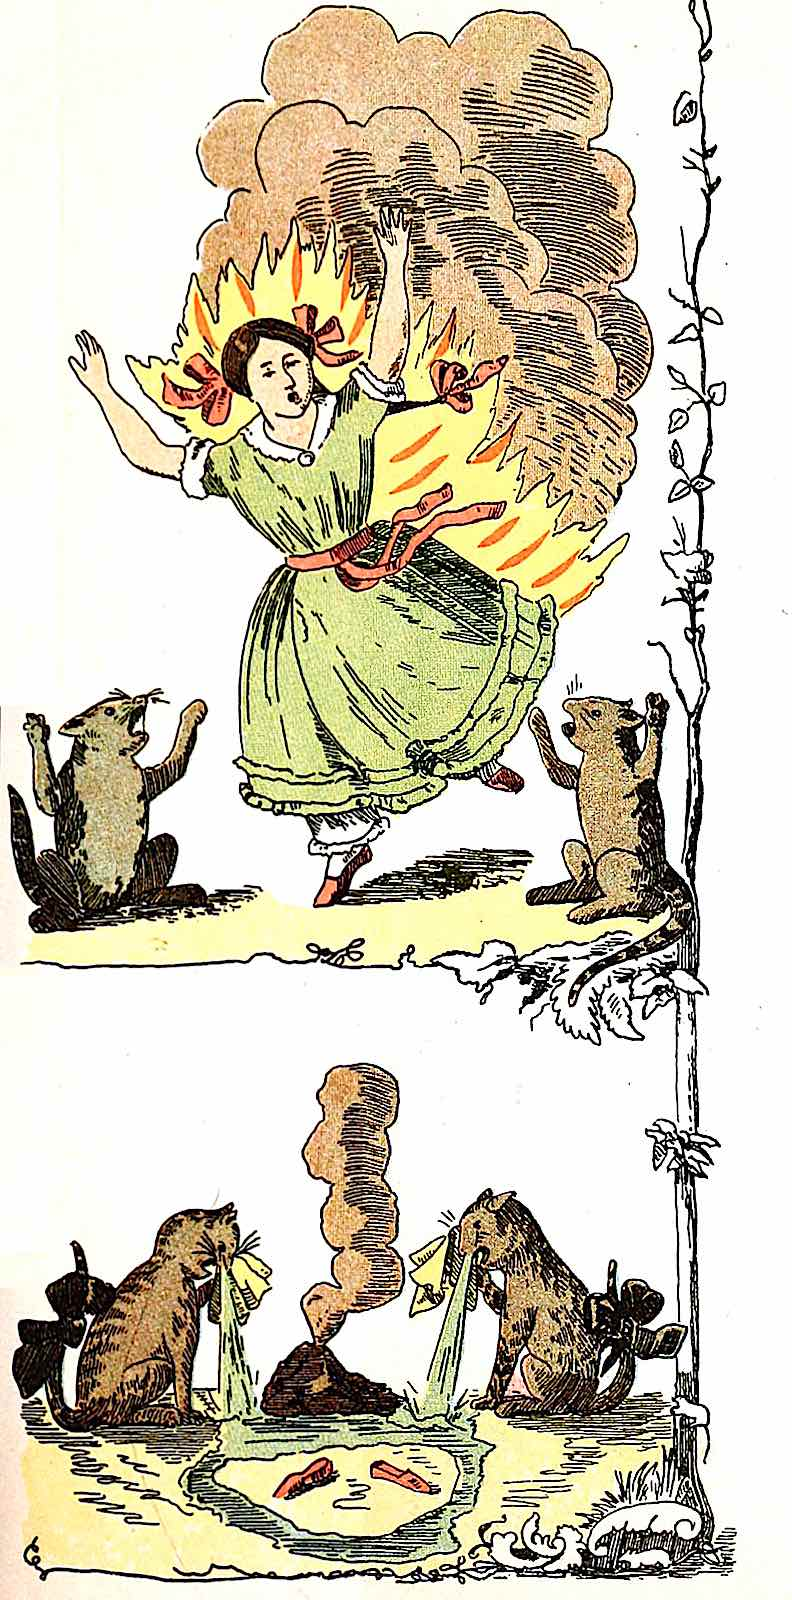 a 1903 schoolbook illustration about fire safety in the home